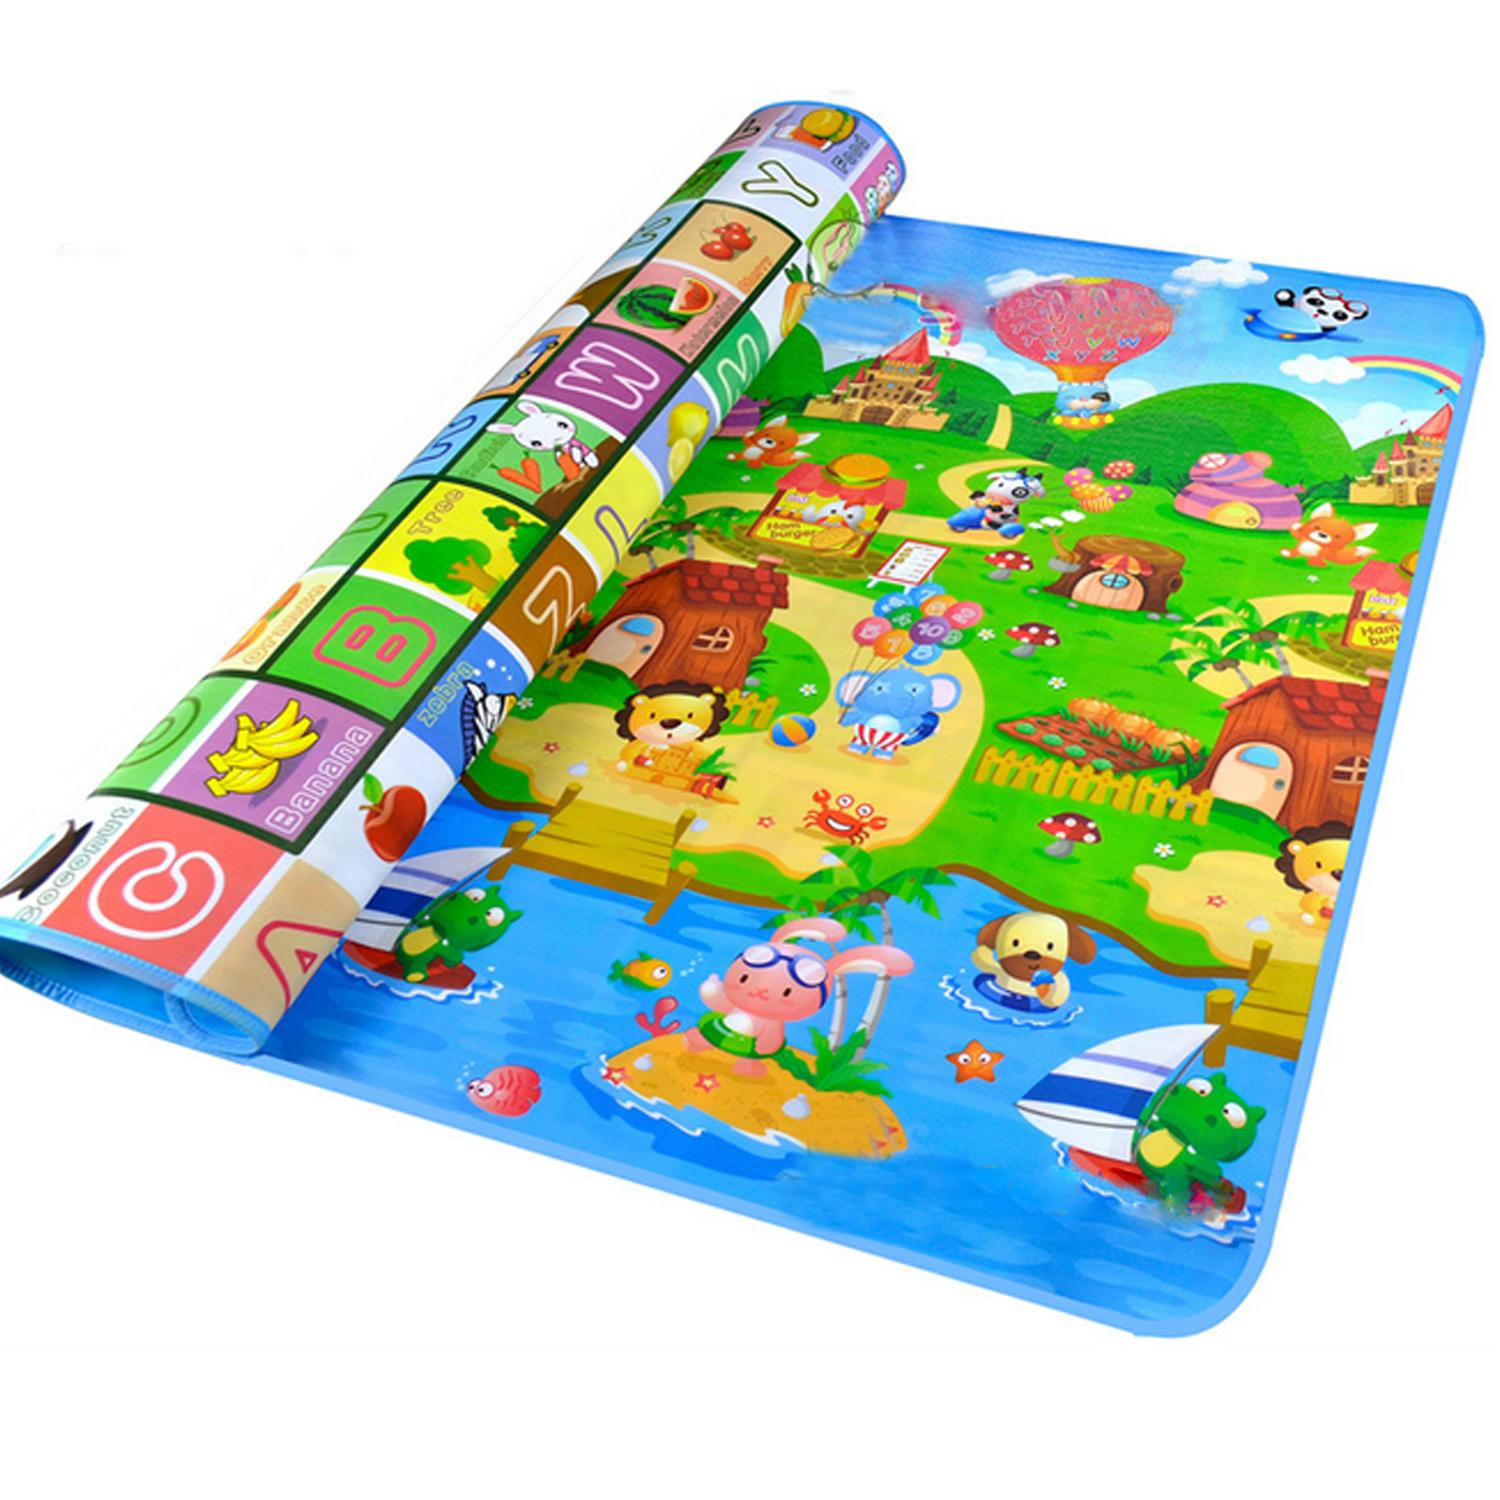 Double Sides Non-Slip Waterproof Fruit Animals Letter Baby Kid Care Crawling Floor Play Game Mat Pad For Indoor Outdoor Use 200 X 180cm By Stoneky.